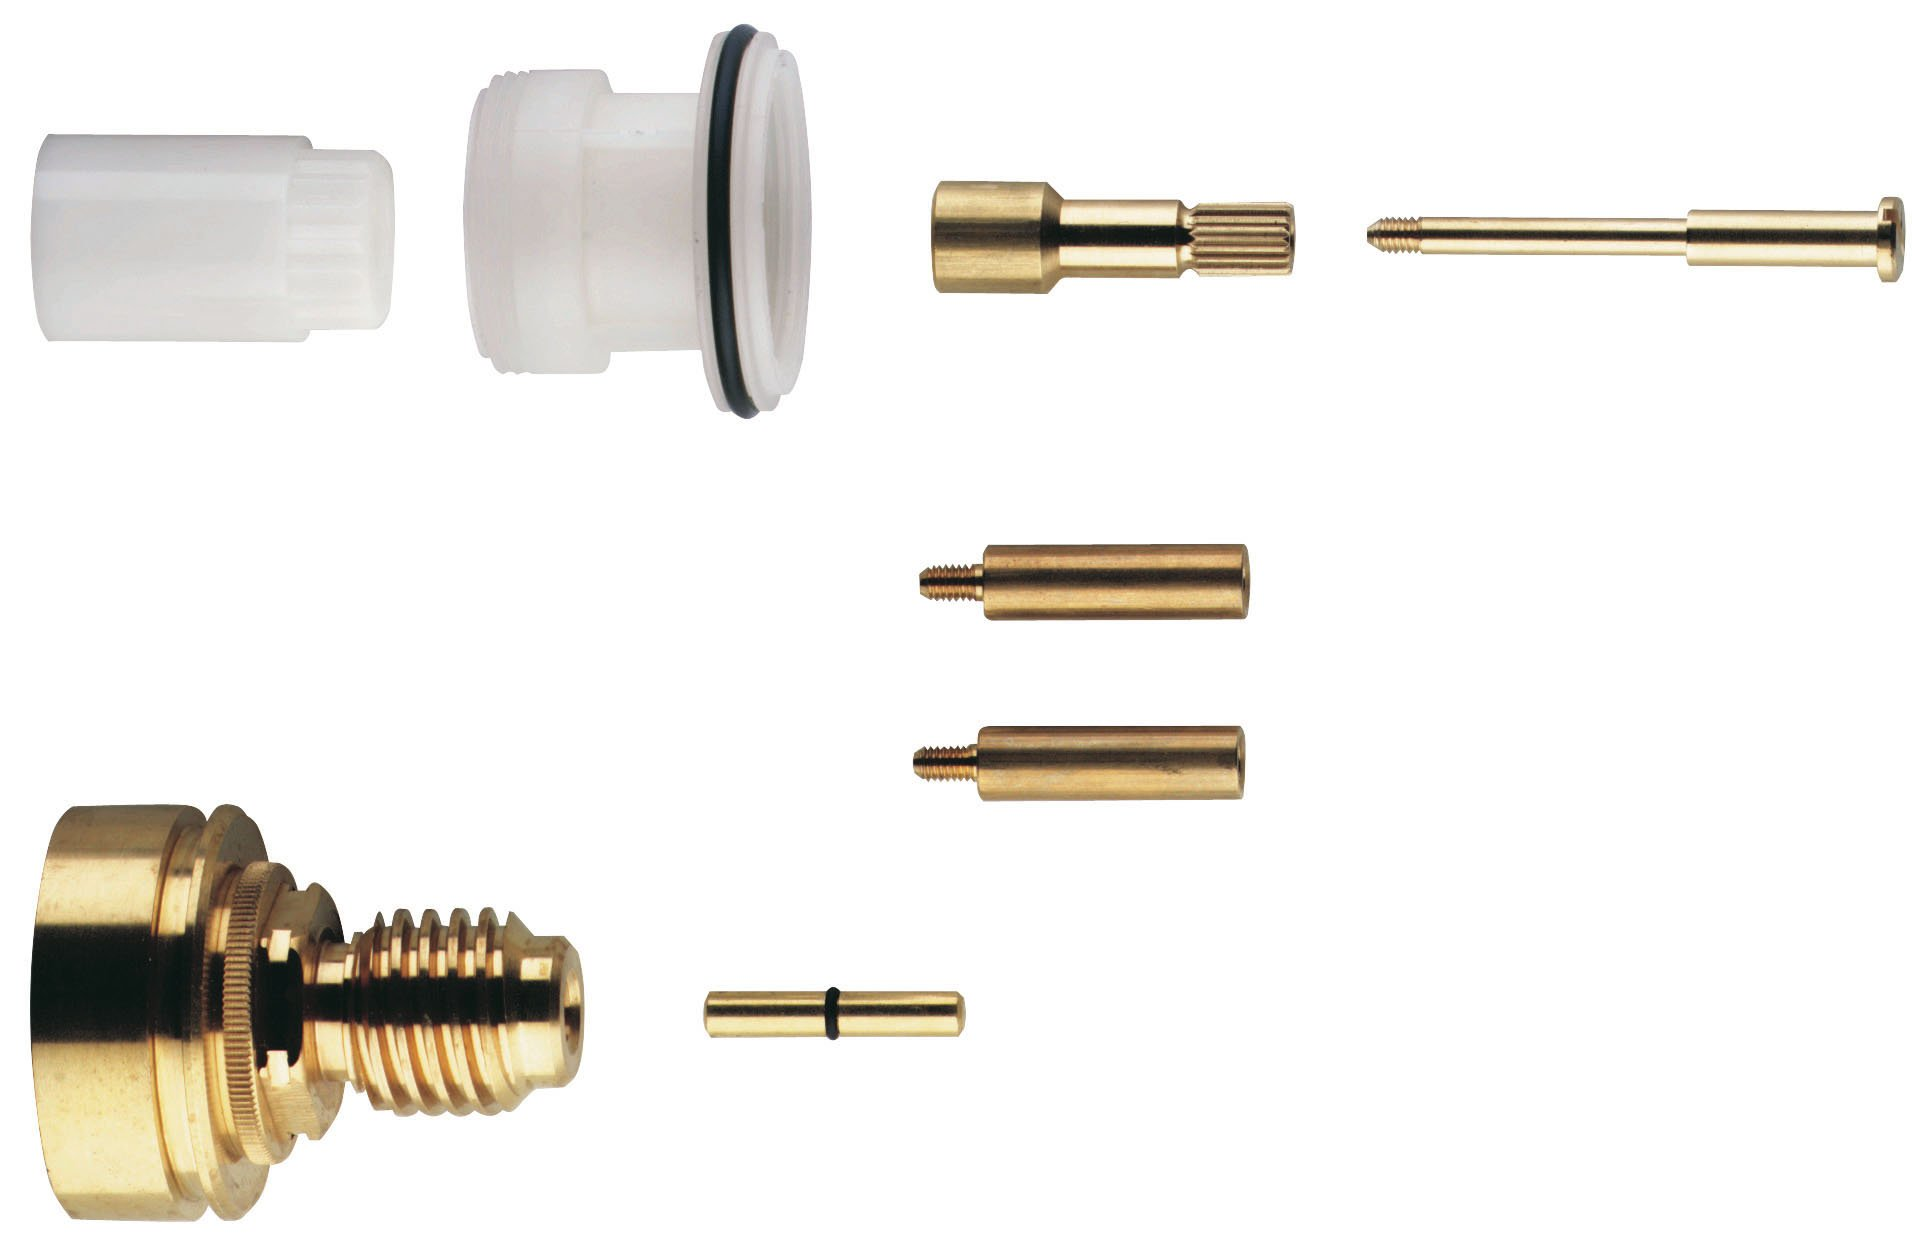 1-1/8 In. Extension Kit For Grohtherm Rough-In Valves (34 907), (34 908), (34 909), (34 122), (34 124)